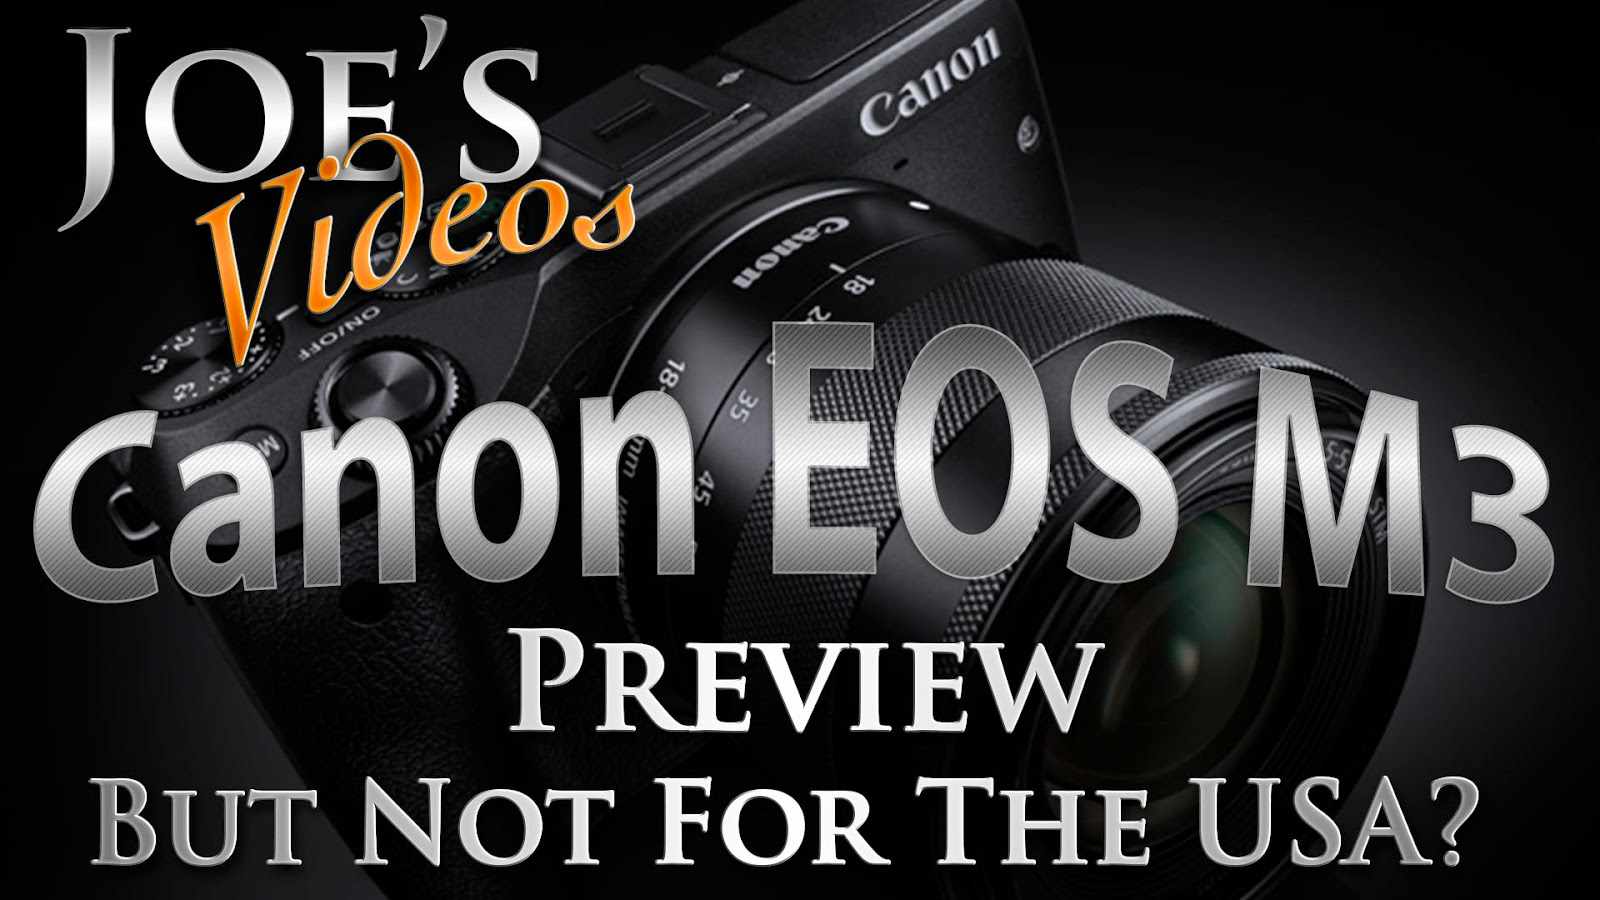 Canon EOS M3 Preview, But Not For The USA | Joe's Videos